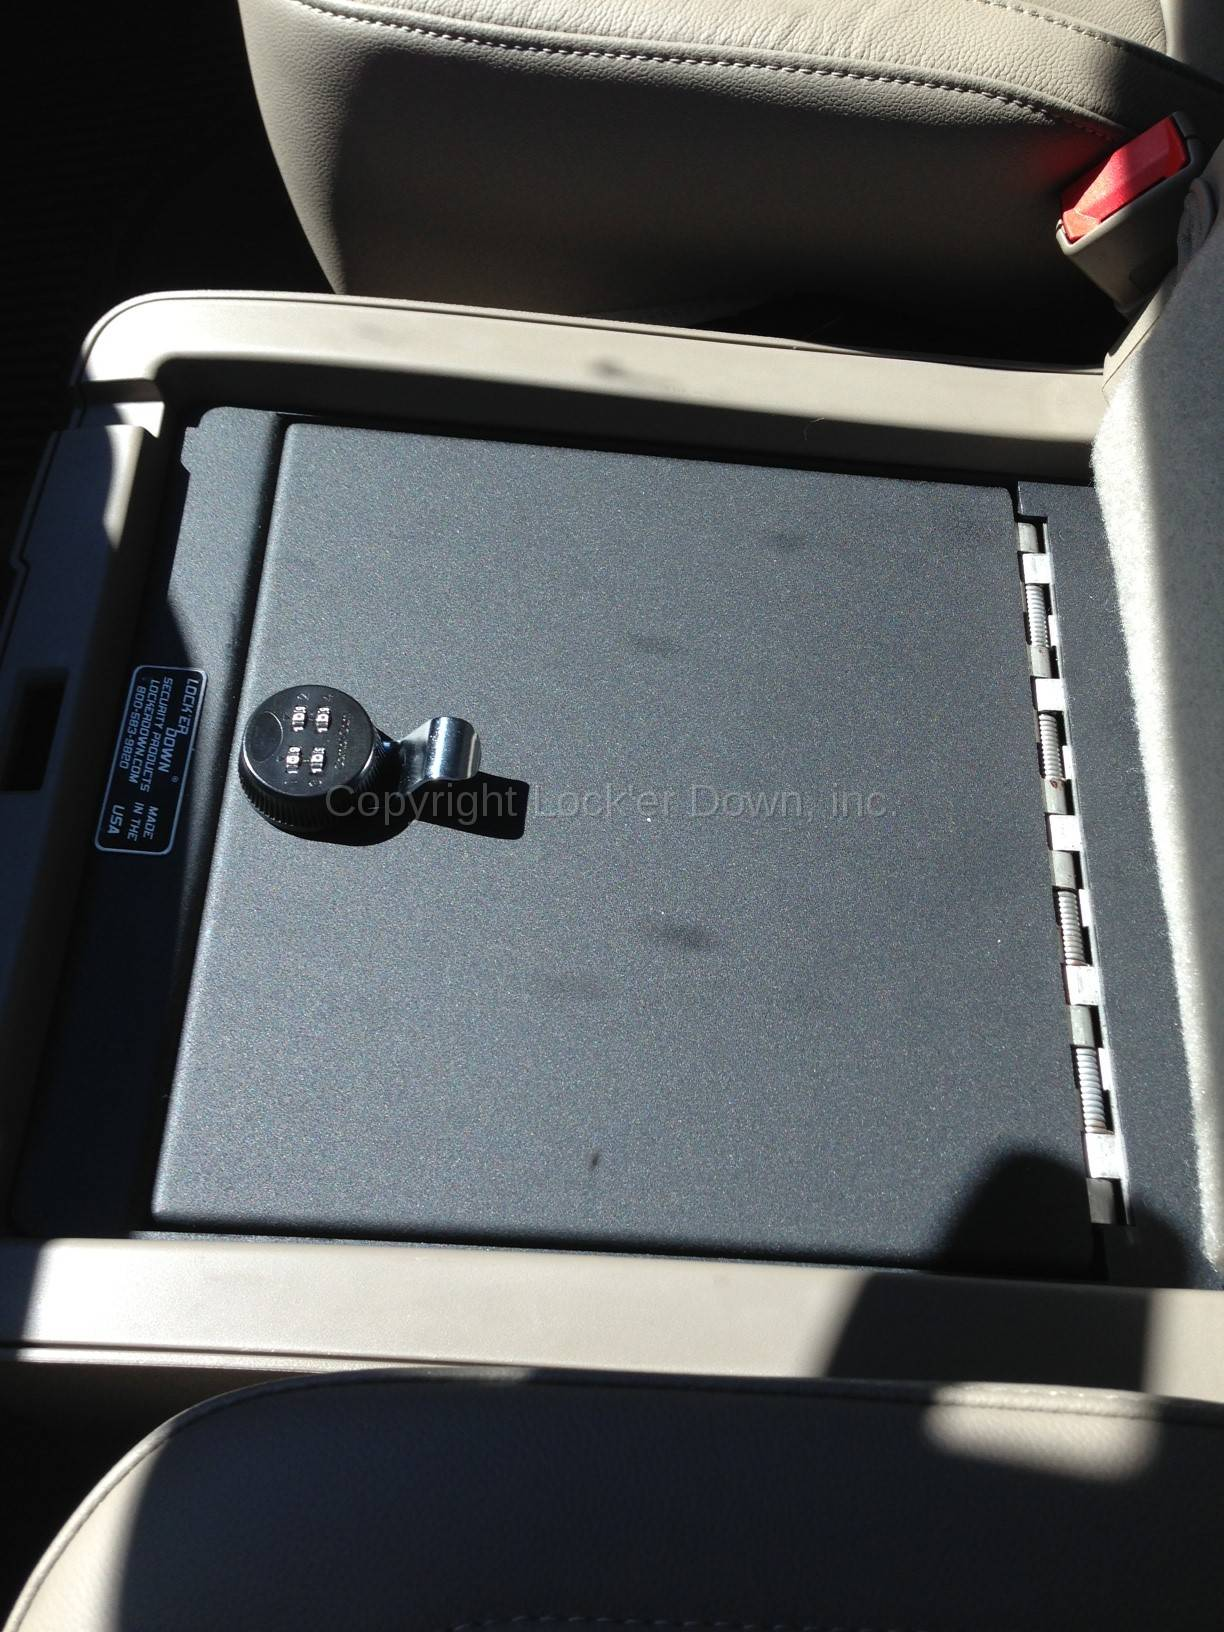 Console Safe 2014 Up Chevrolet Silverado Amp Gmc Sierra 1500